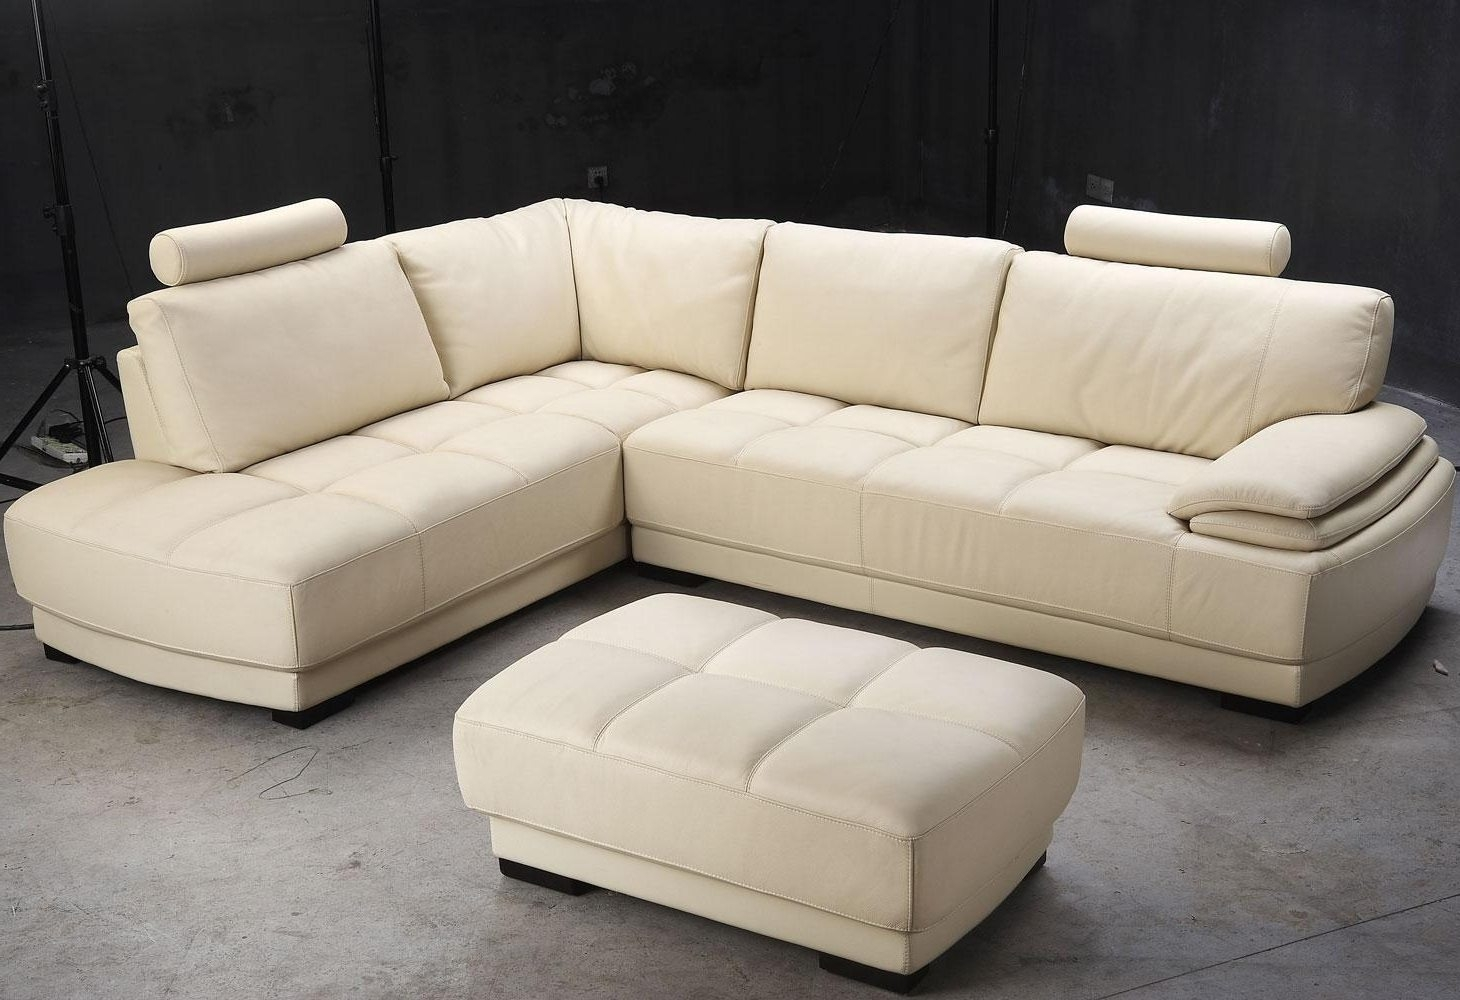 leather sofa charlotte nc 15 diana brown leather sectional sofa set sofa ideas 6892